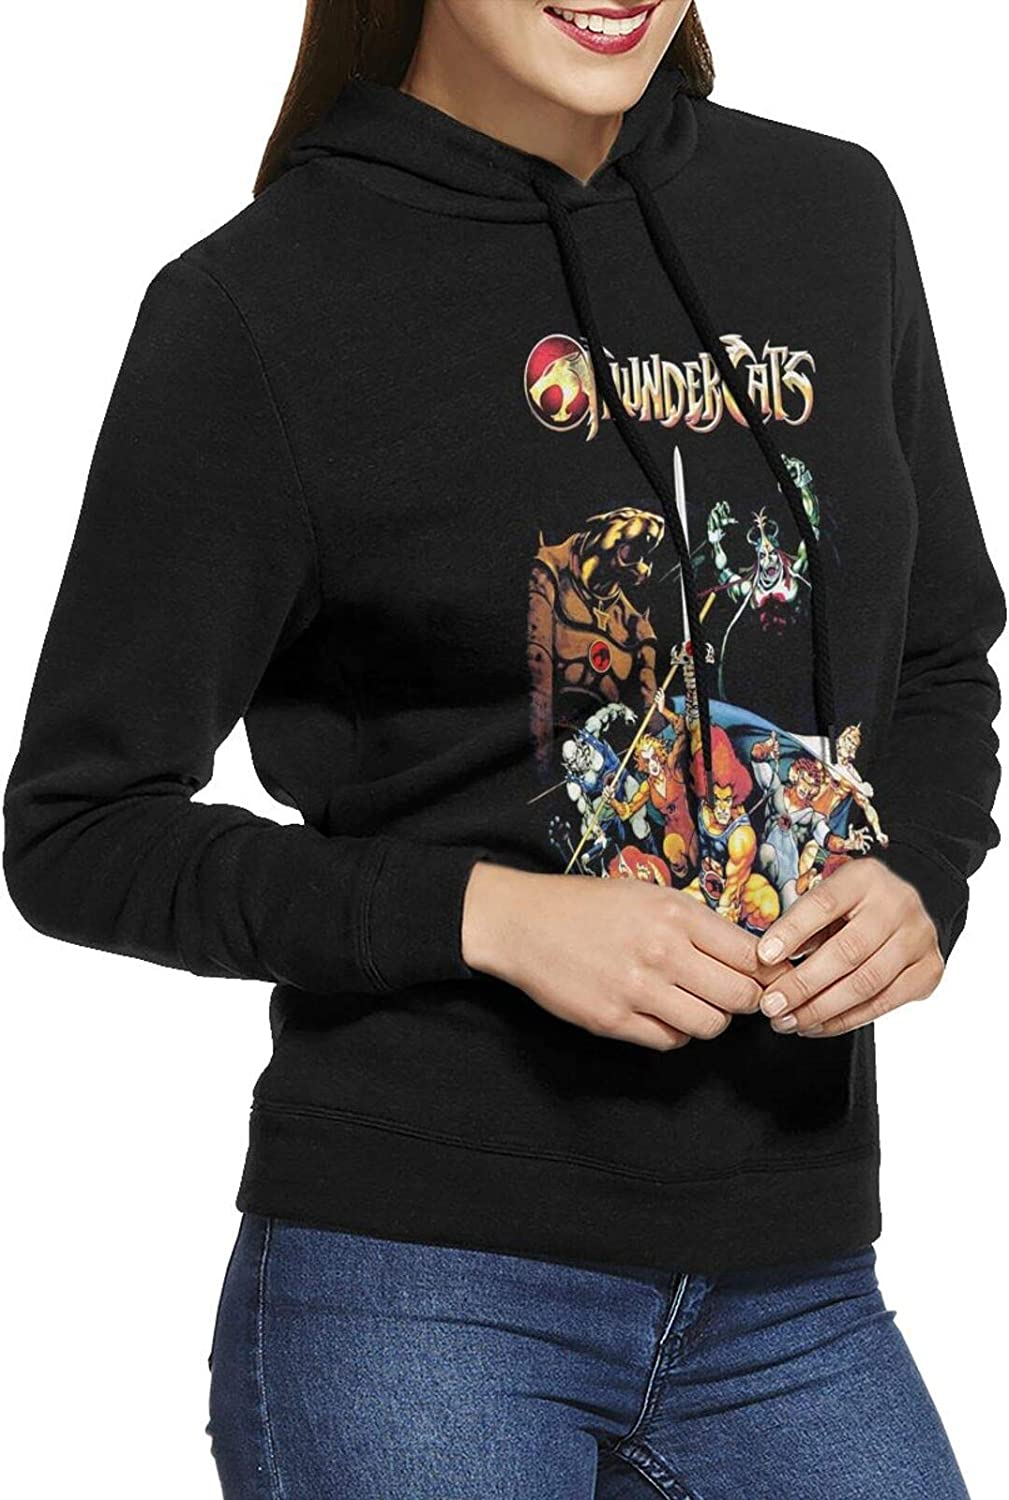 Thundercats Fort Worth Mall Hoodie price Woman'S Casual Cotton Sweatshirts Long Sleeve